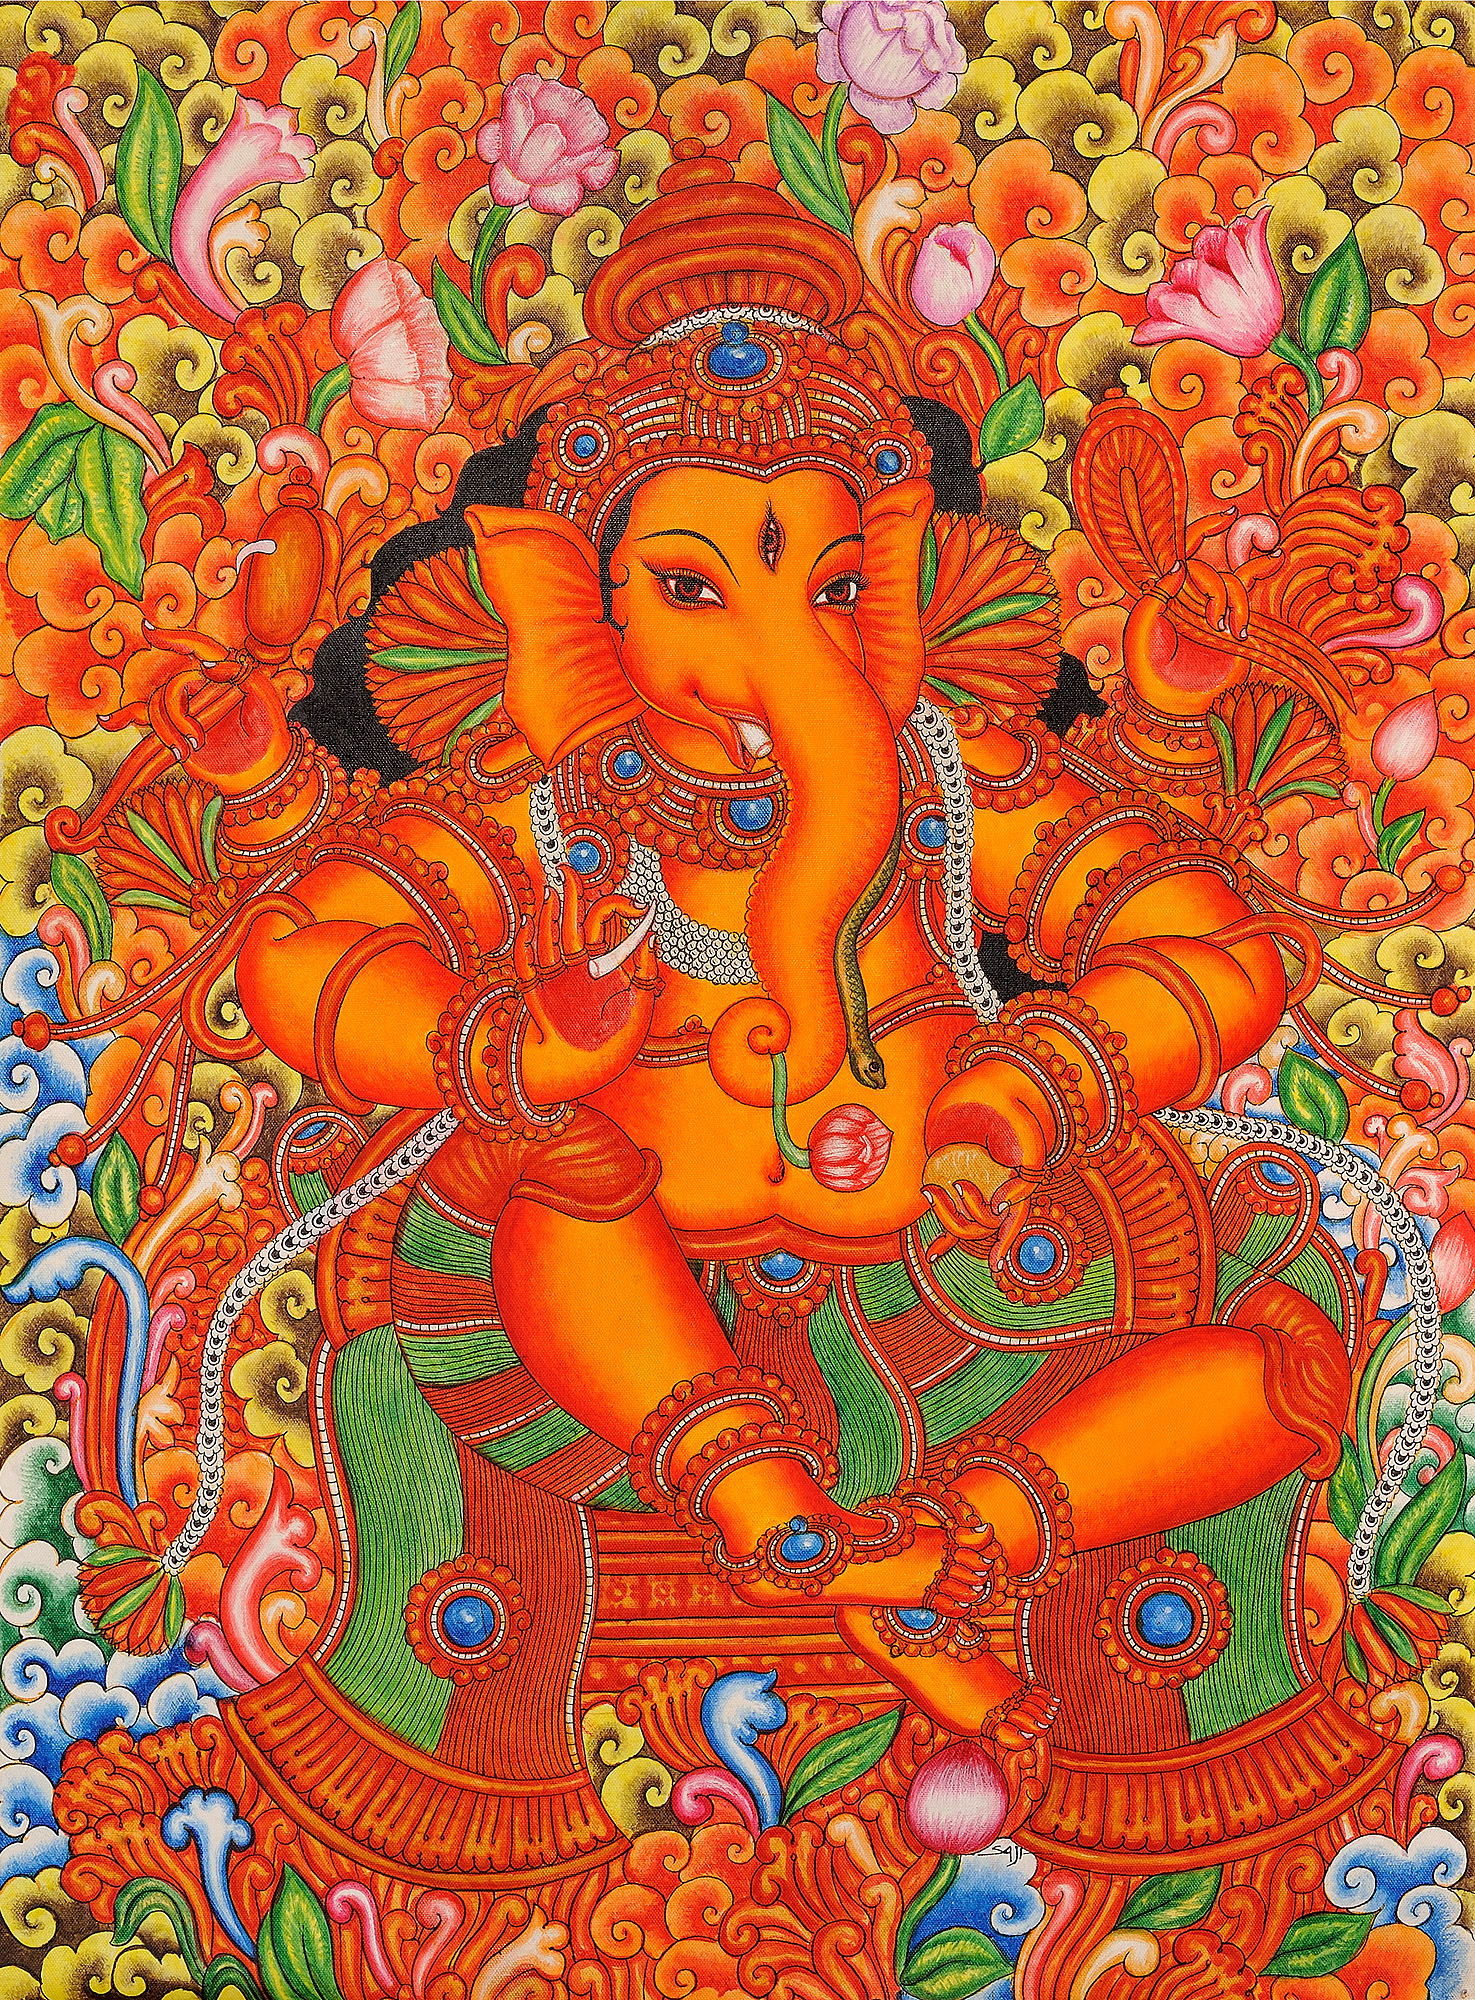 Lord ganesha in the style of mattanchery palace murals for Cn mural designs